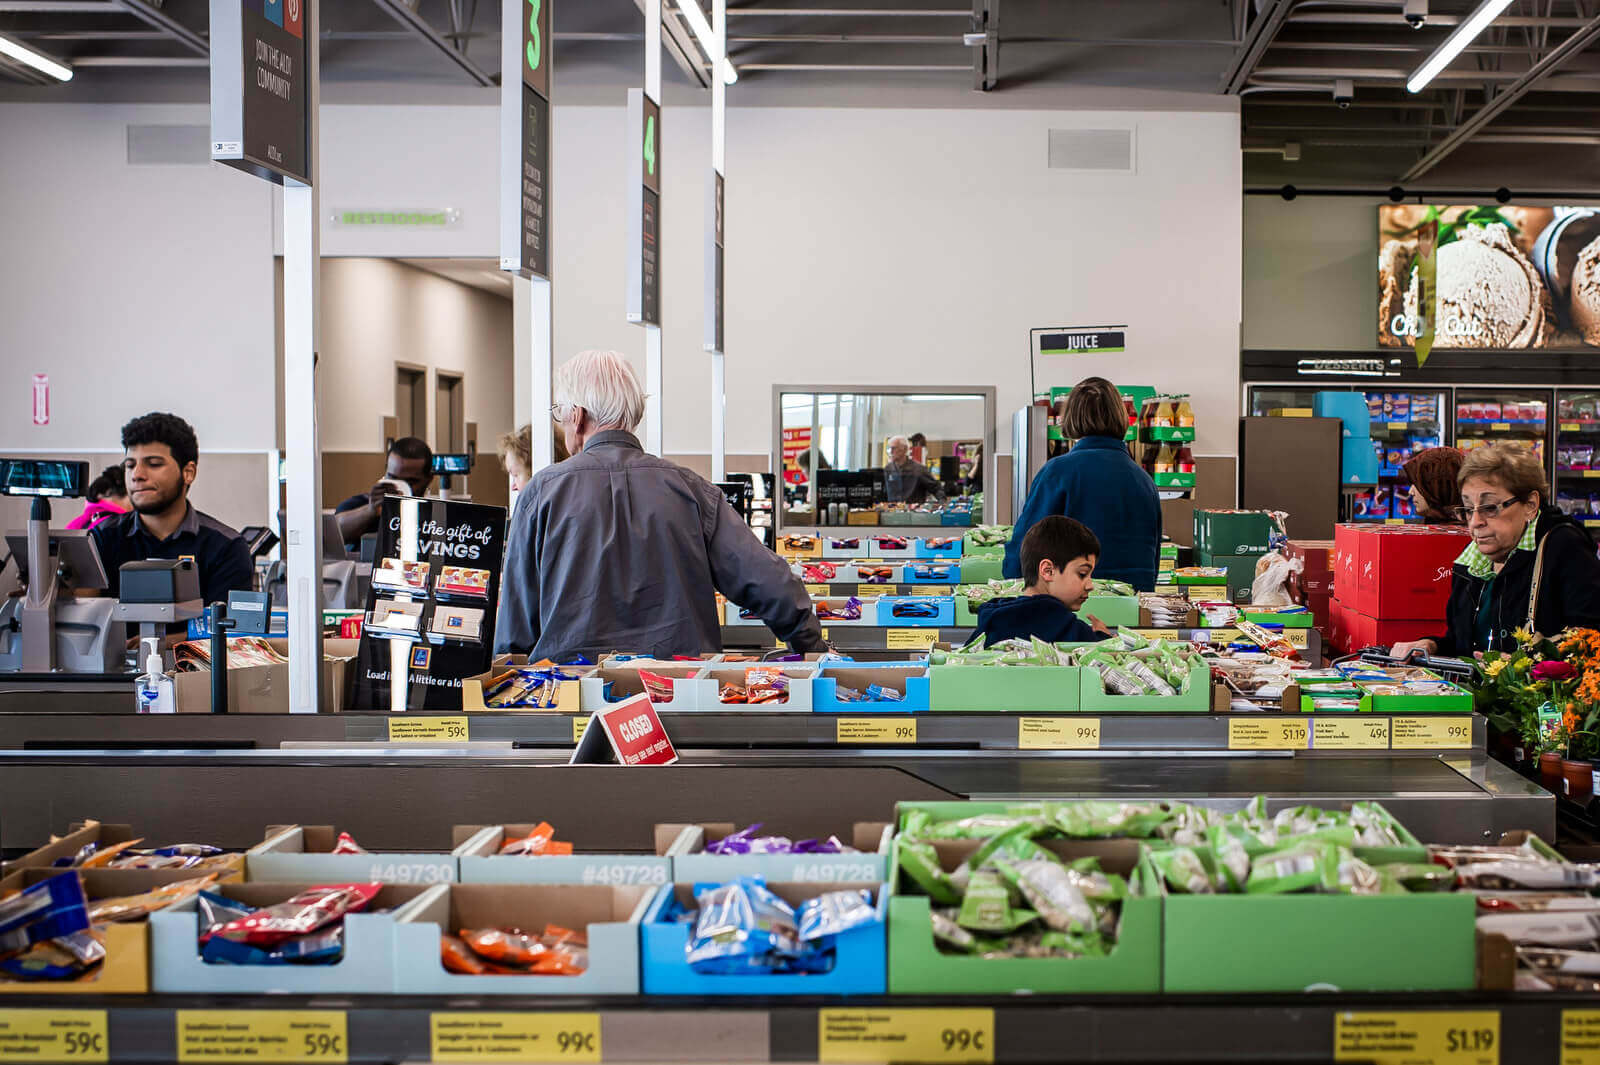 """""""Those lines fly. You're not waiting for people to bag. They're not messing around there,"""" said Allison Robicelli, a frequent Aldi shopper."""